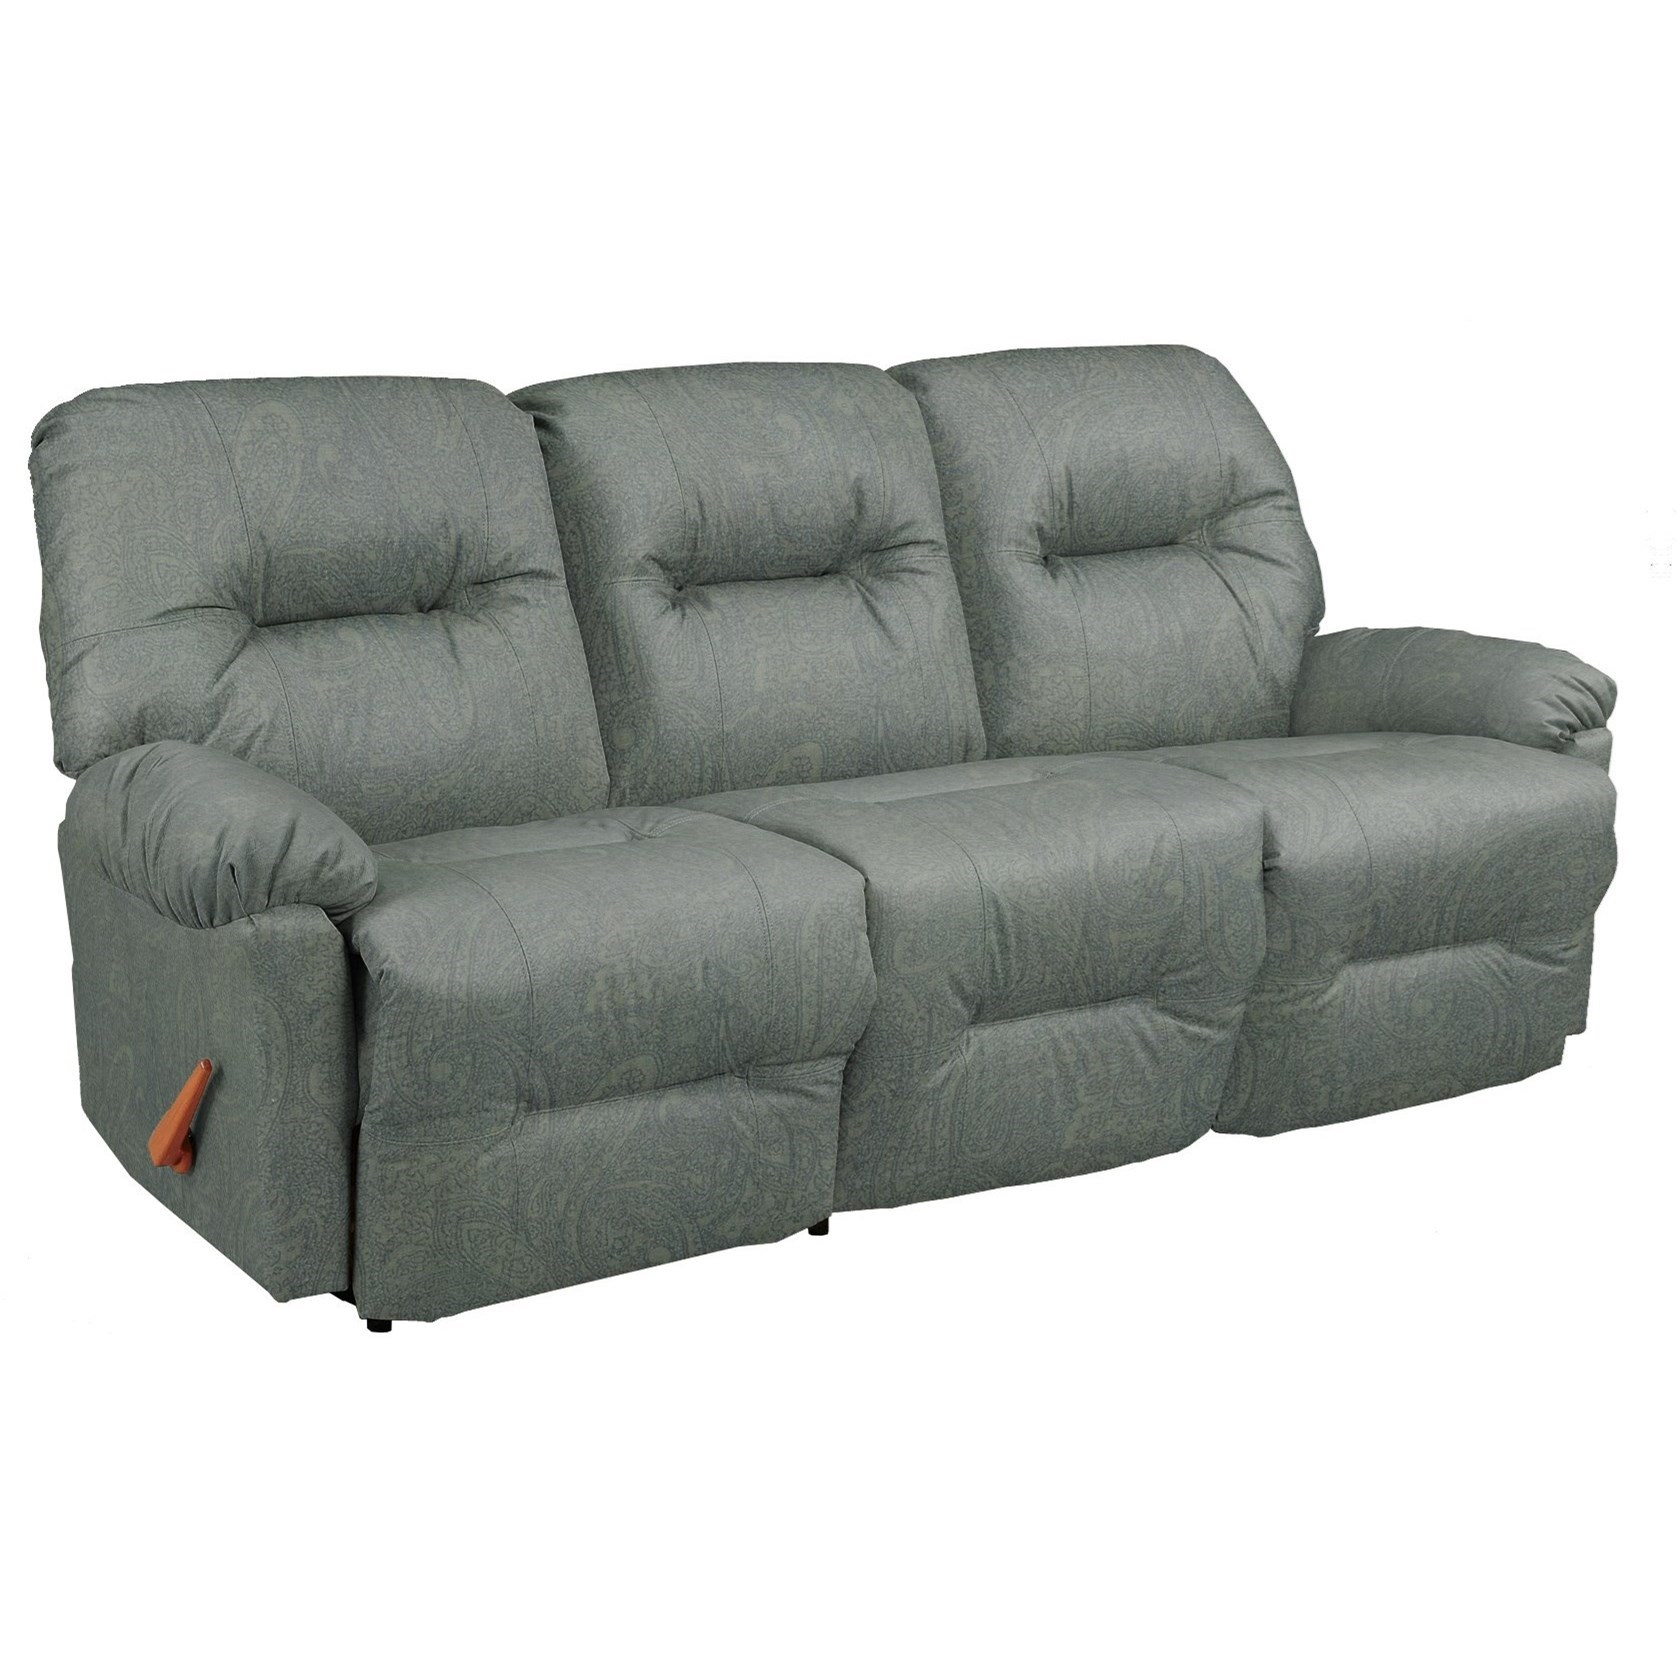 Best Home Furnishings Redford Reclining Sofa - Item Number: -679135843-33053